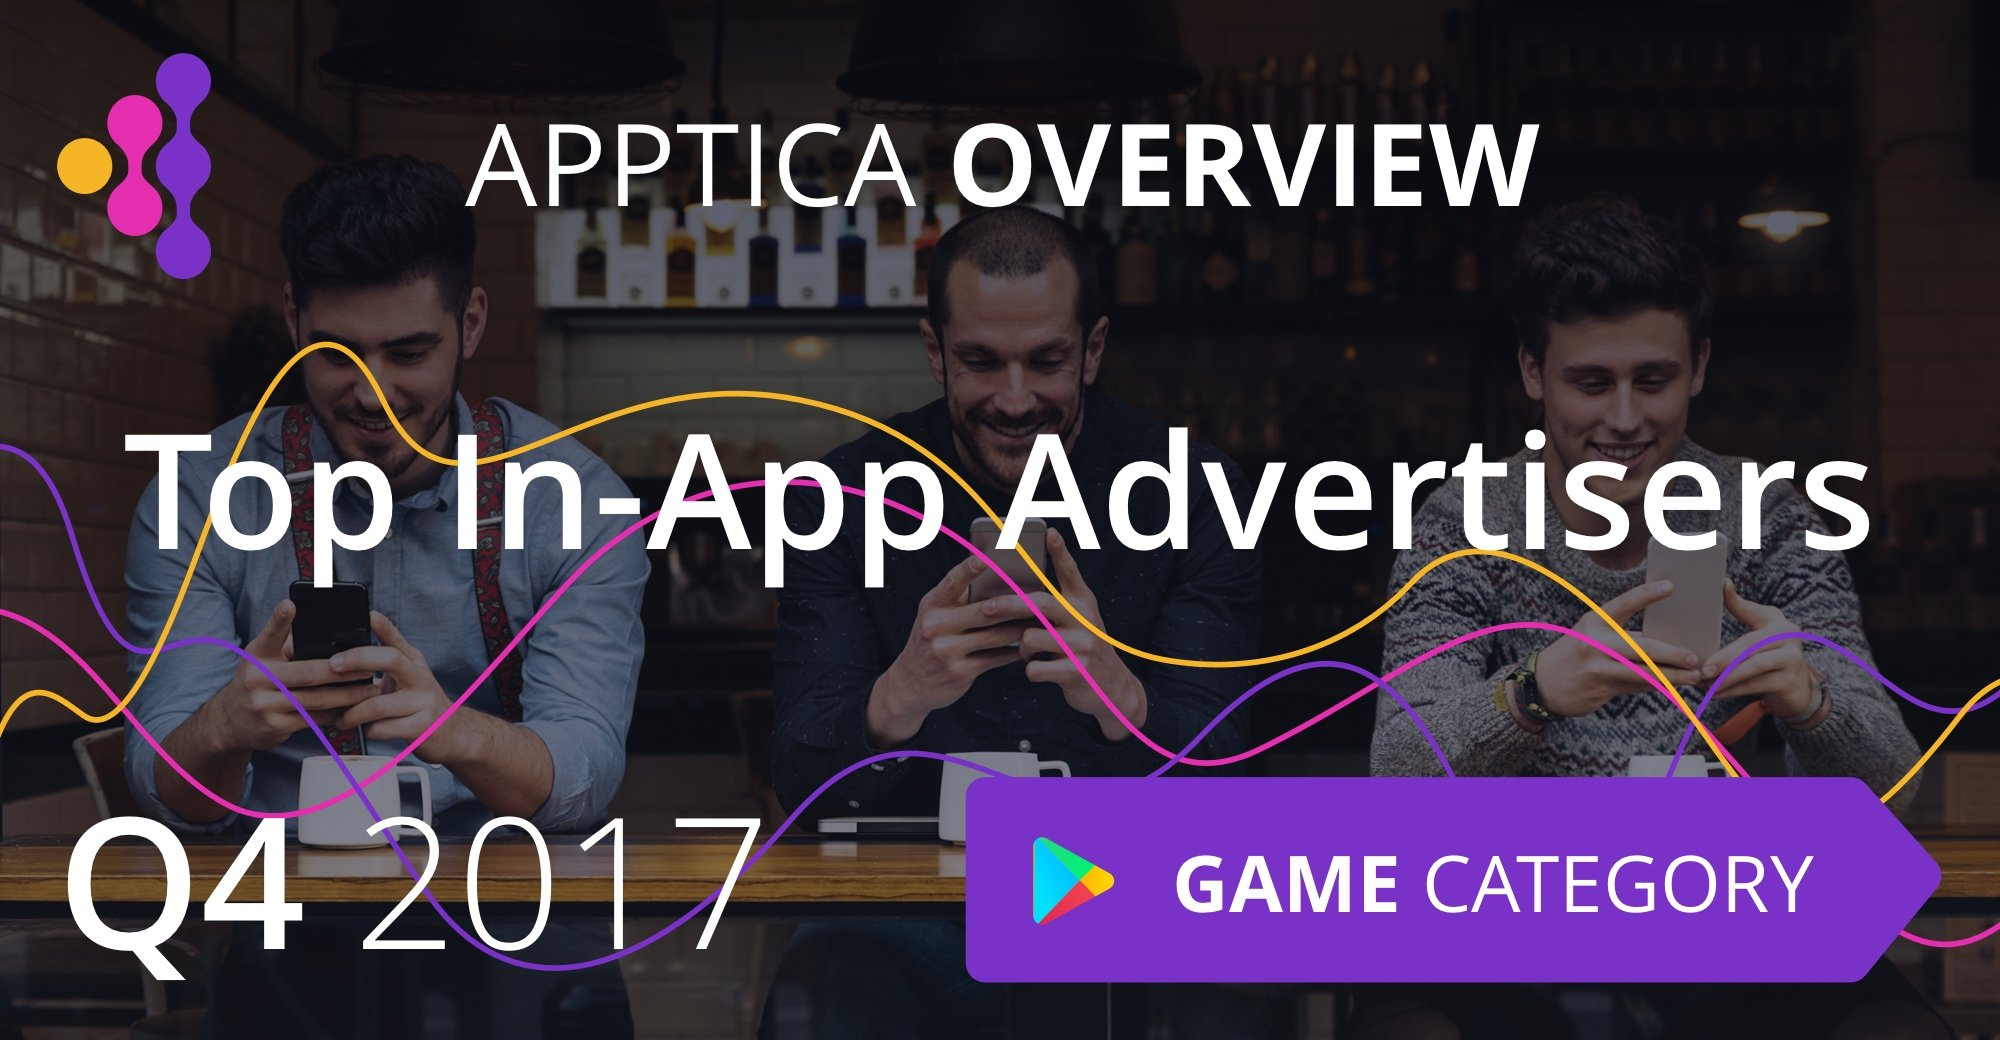 Top In-App Advertisers of Q4 2017, Android, Game Category. Apptica Overview.